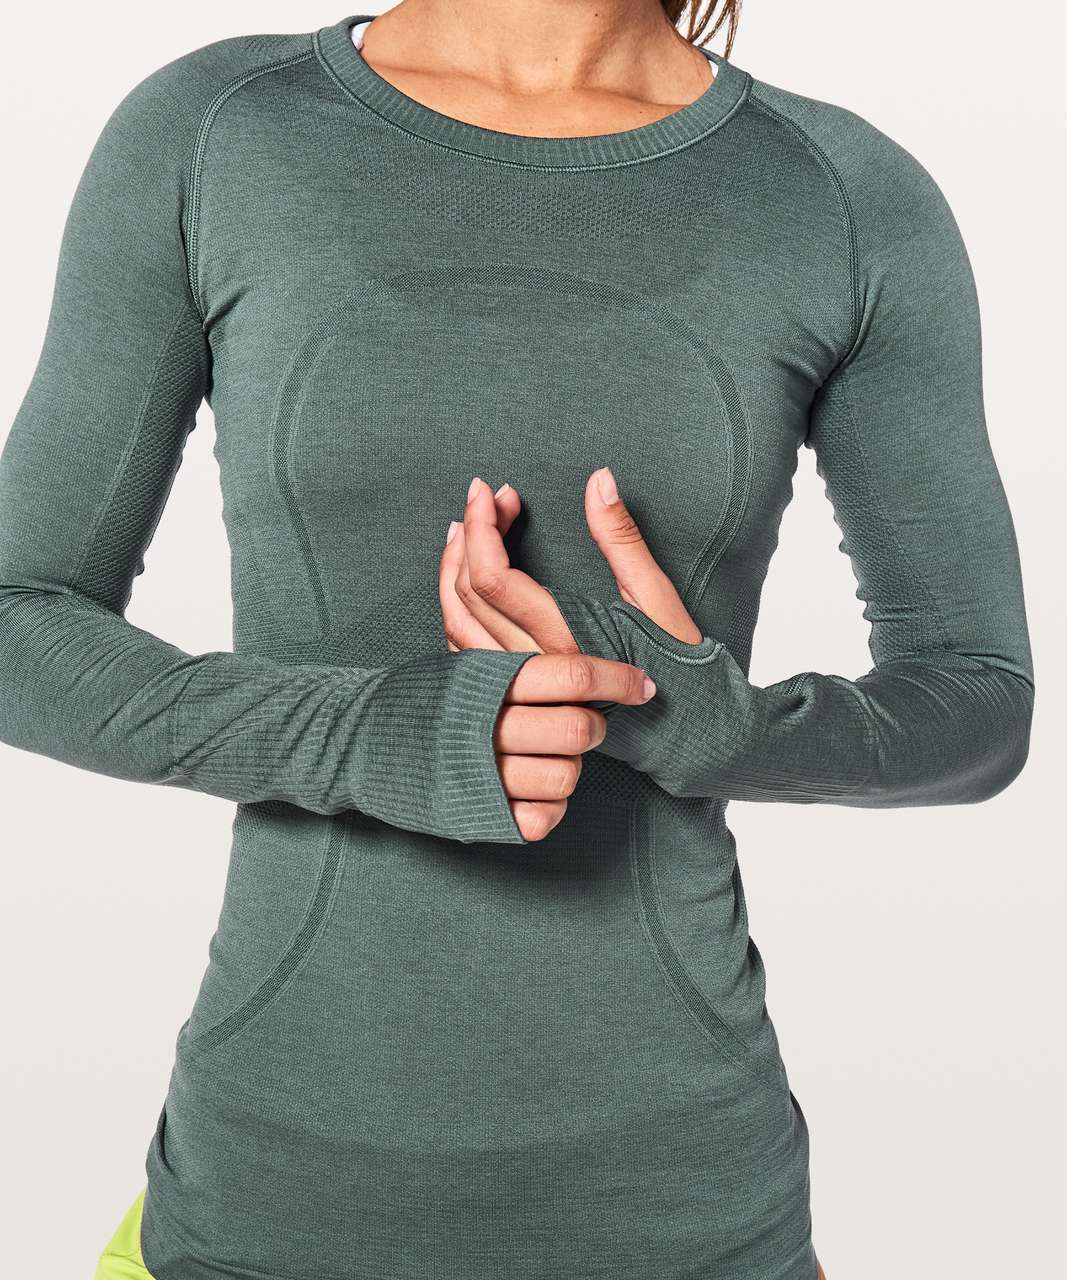 Lululemon Swiftly Tech Long Sleeve Crew - Sea Steel / Sea Steel